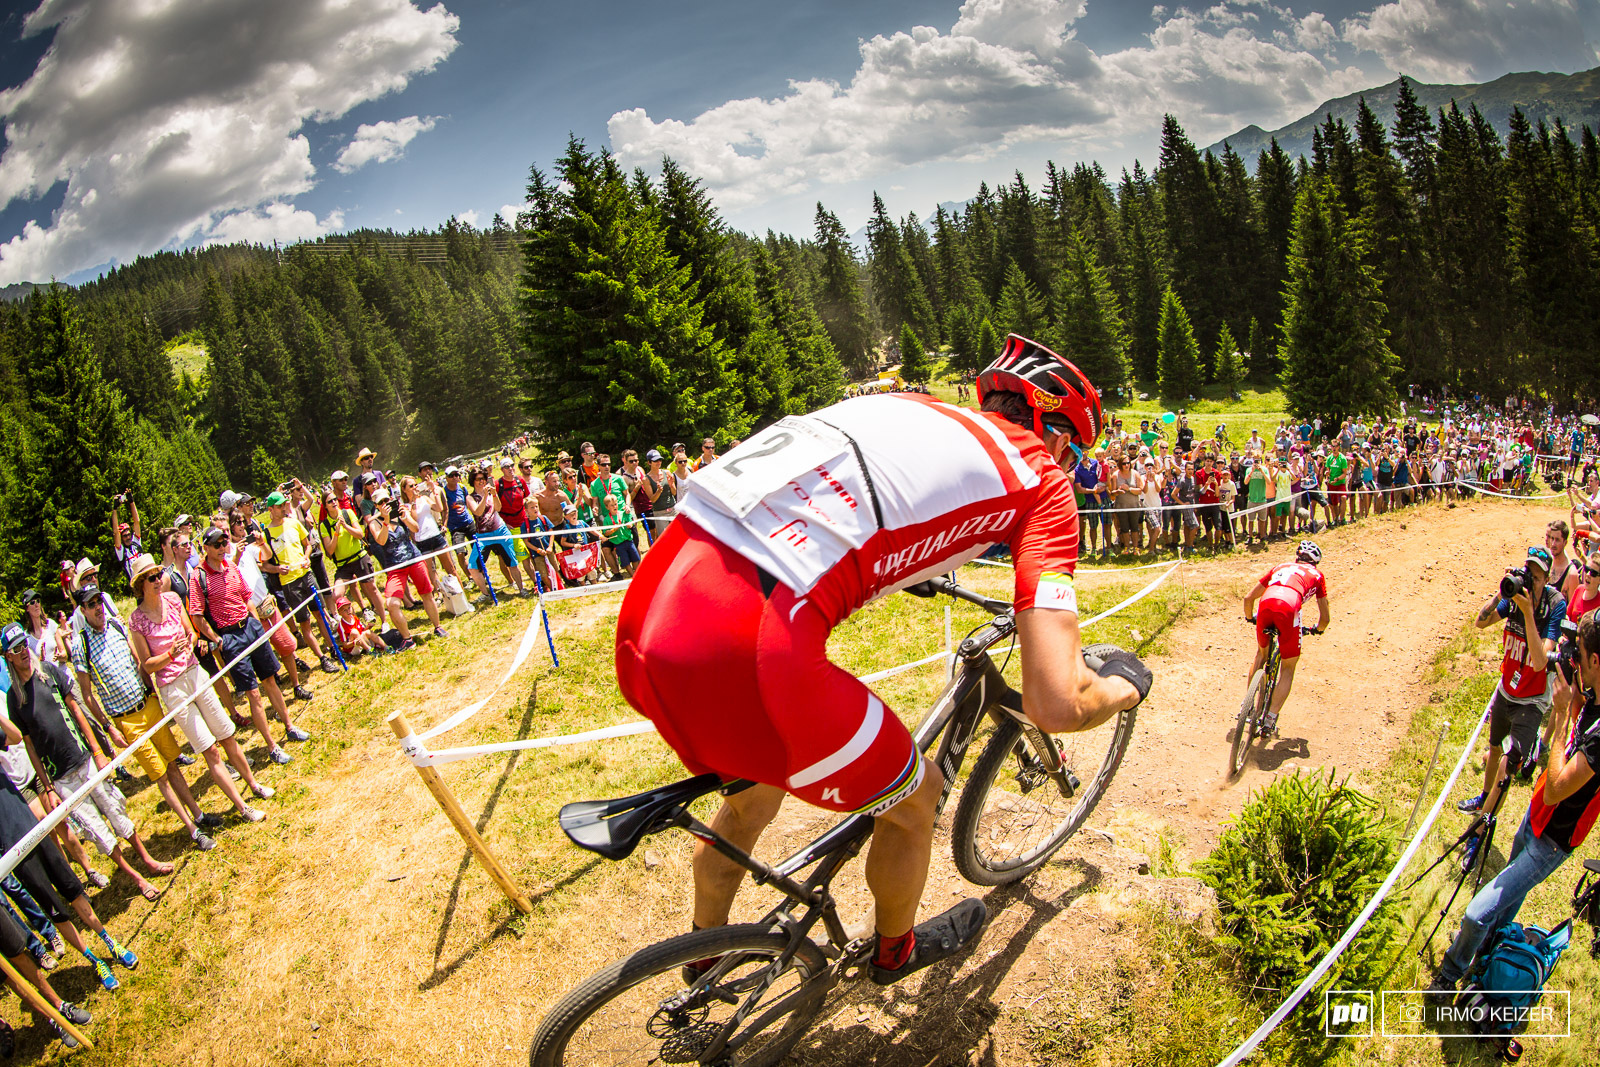 The battle of the day proved to be between the unleashed Jaroslav Kulhavy and Nino Schurter.